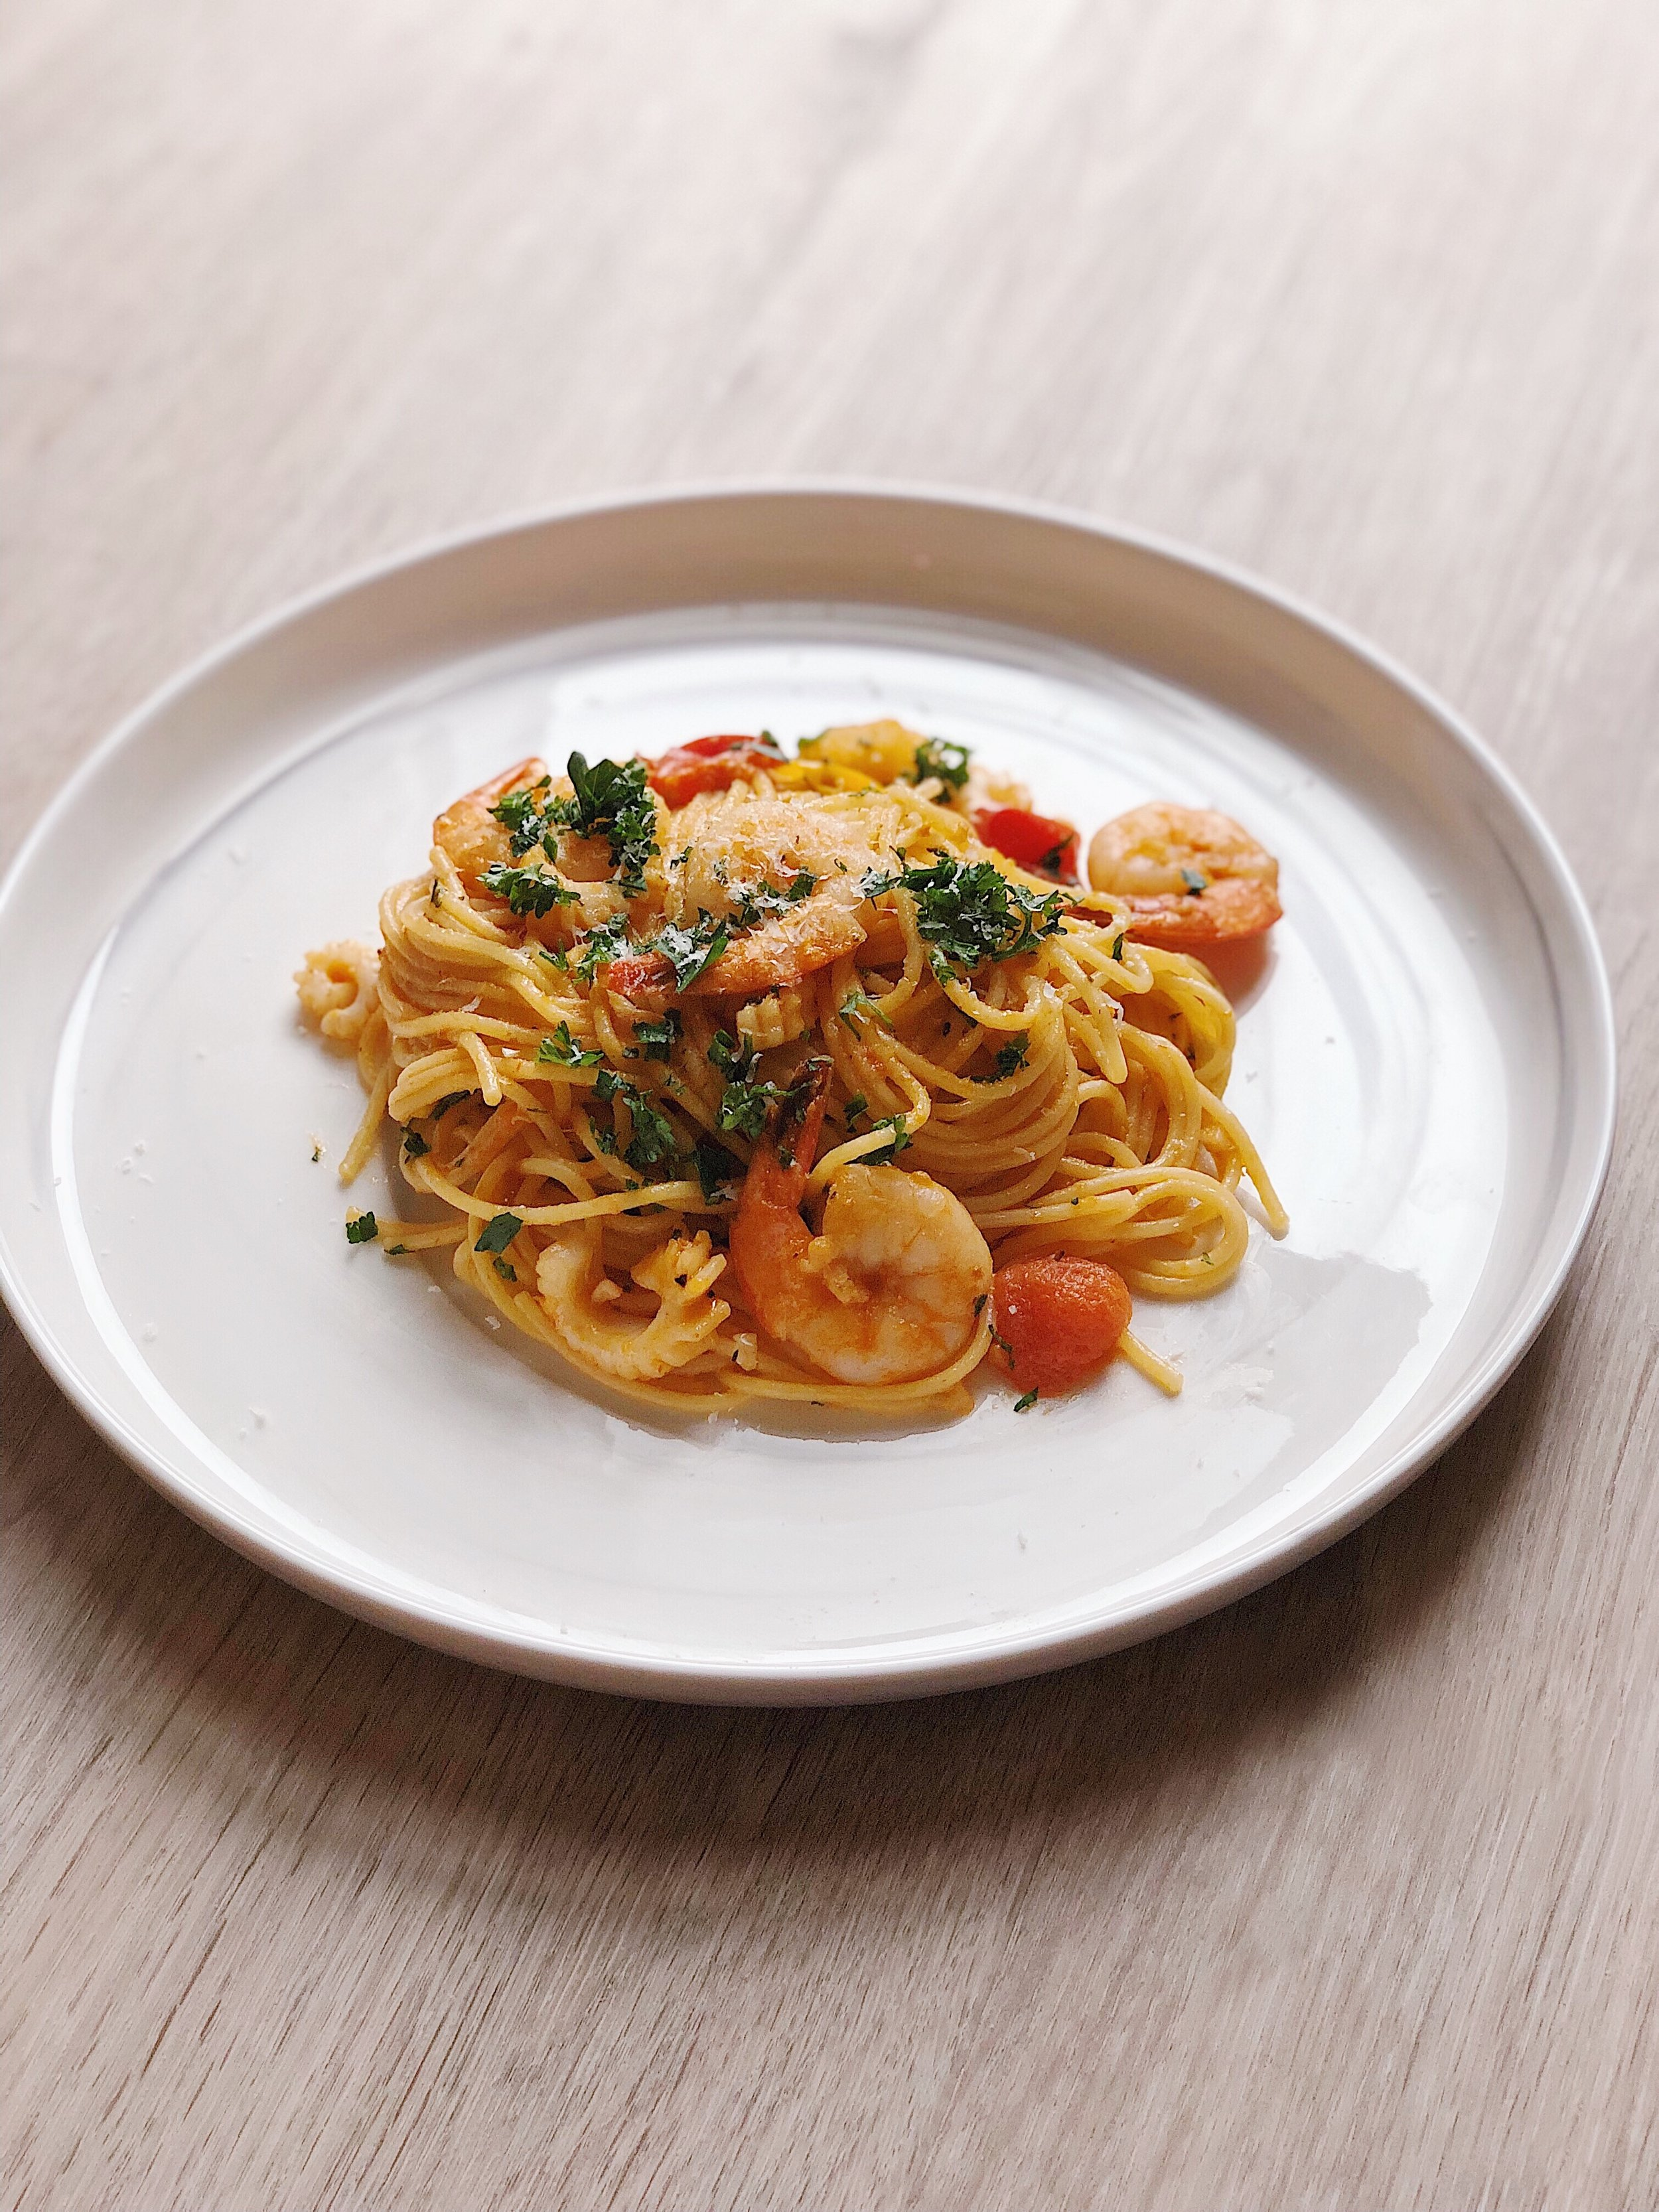 Seafood Pasta with Uni (sea urchin) Butter